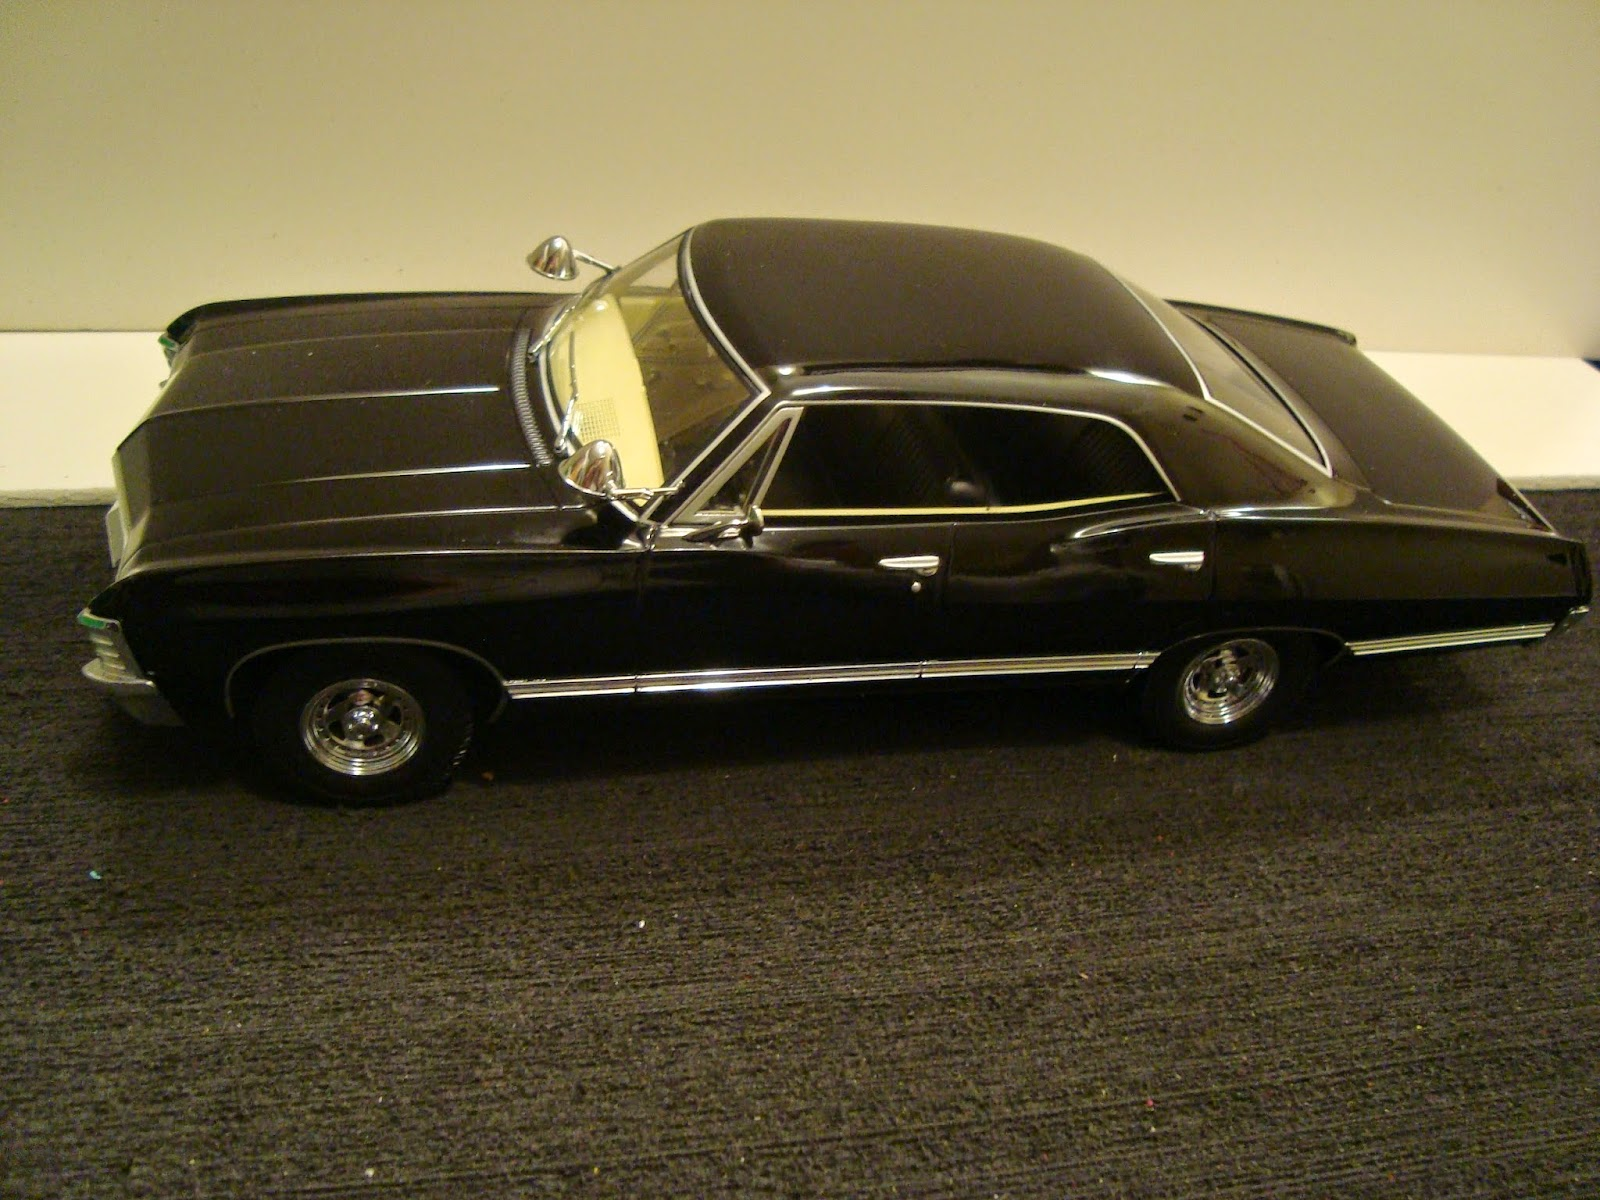 diecast american car nutz 1967 chevrolet impala ss. Black Bedroom Furniture Sets. Home Design Ideas